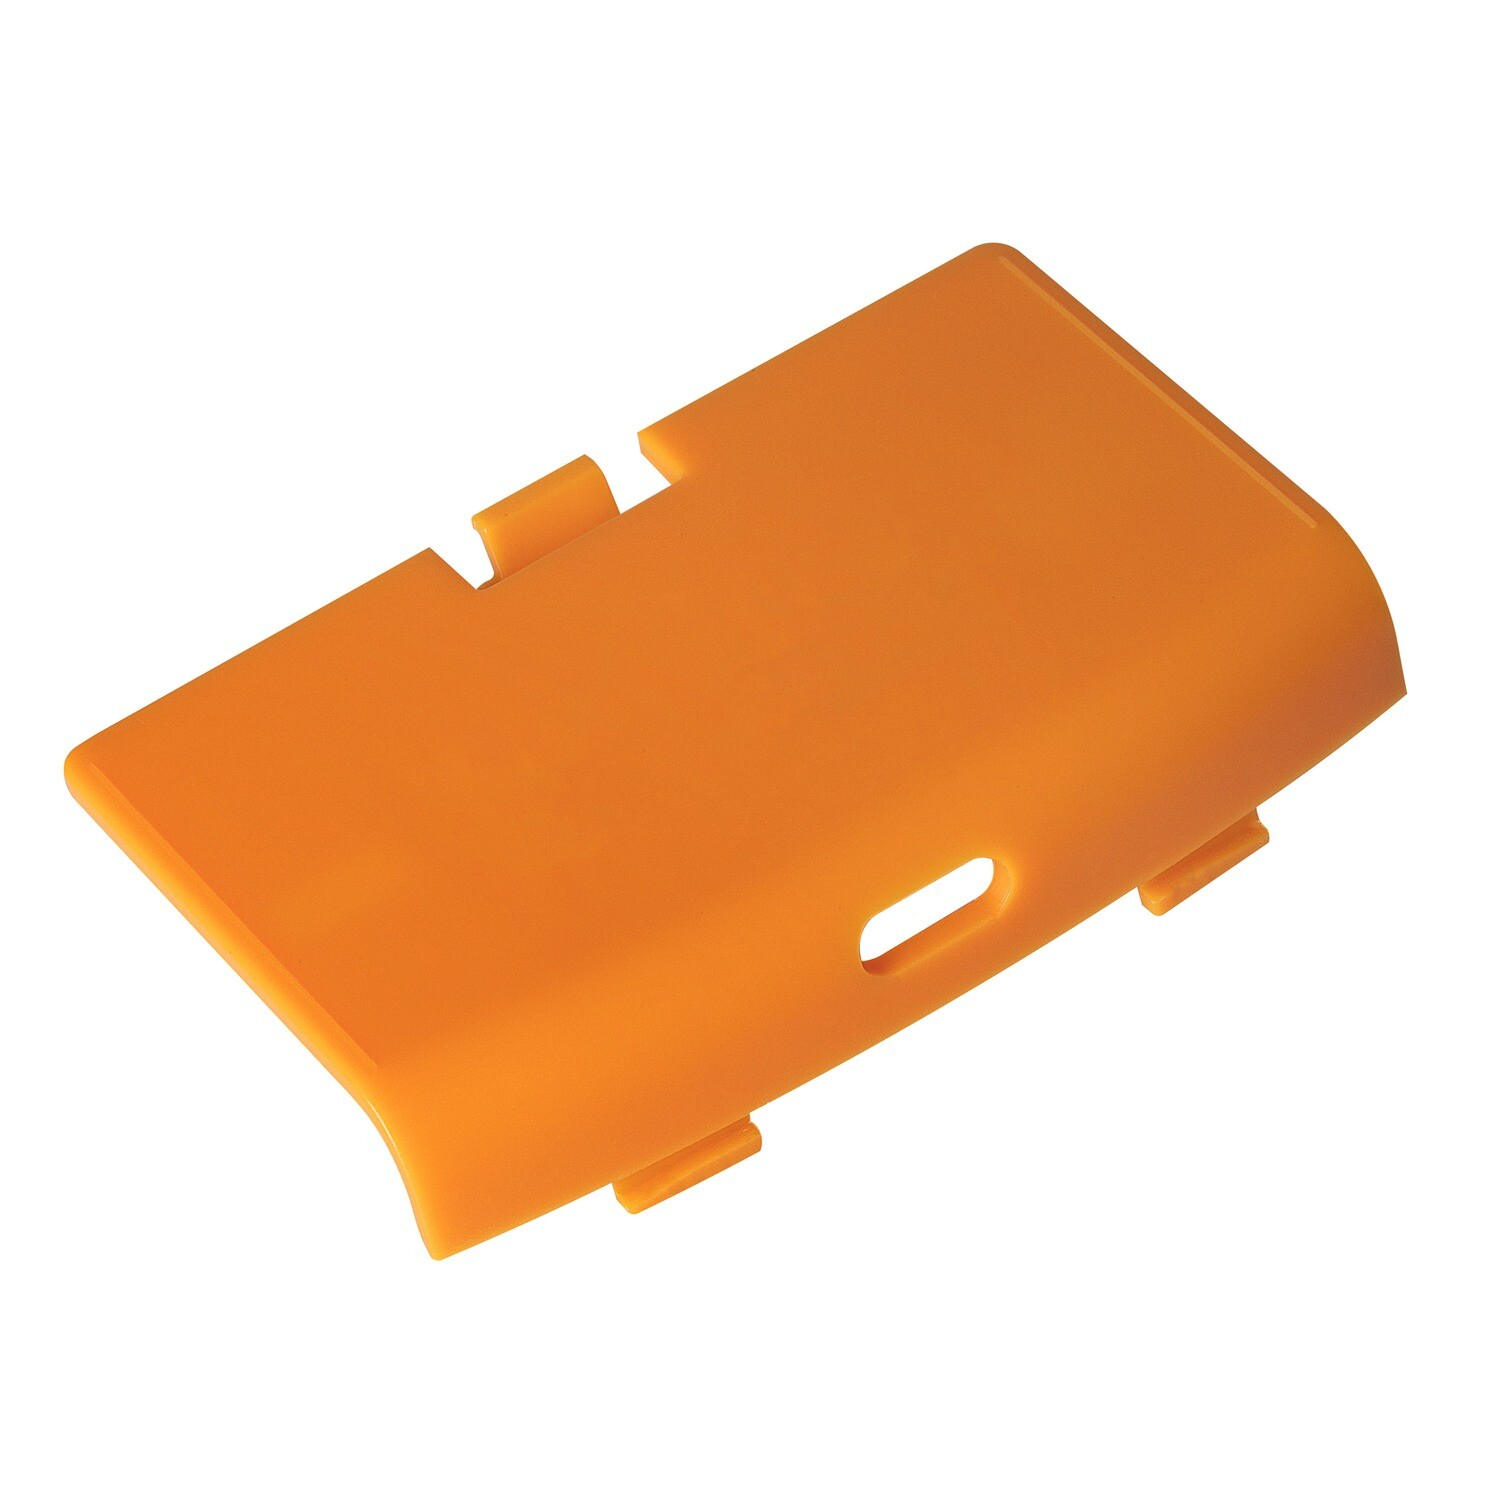 Game Boy Advance USB-C Battery Cover (Orange)